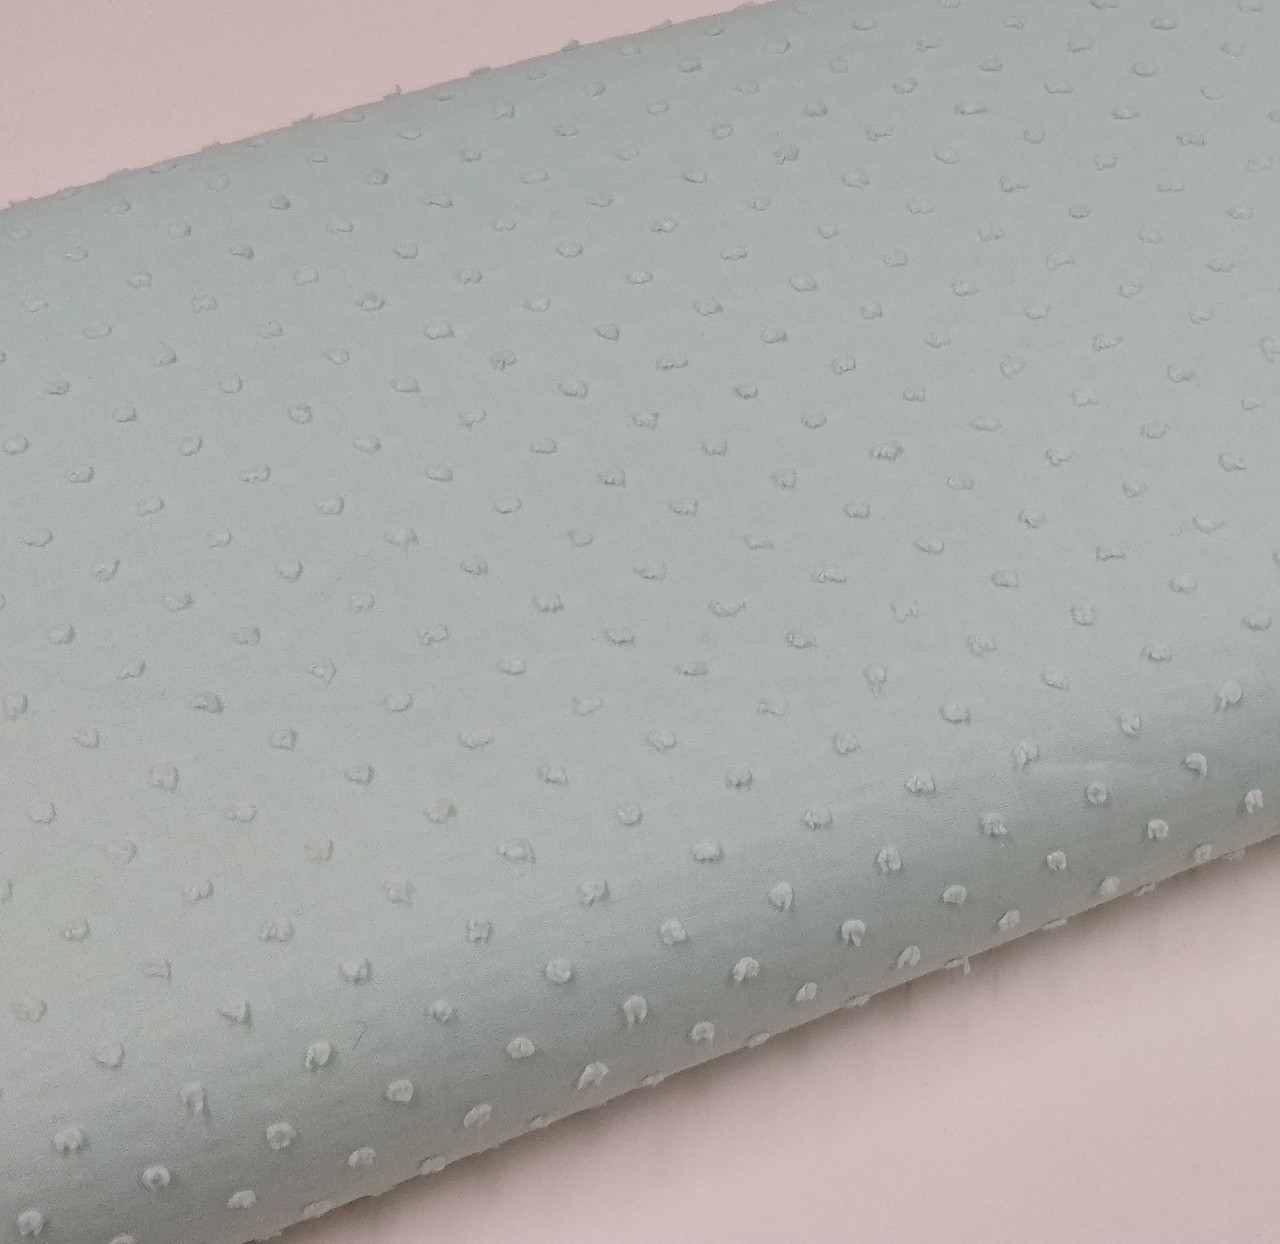 A lovely soft 100% cotton fabric with a cut spot, Colour - Seafoam 137 cm wide, Has the OEKO-TEX standard 100 - this makes it suitable for children's clothing and sleepwear, Choose seafoam piping to match, Wash at 30 degrees, Priced per metre